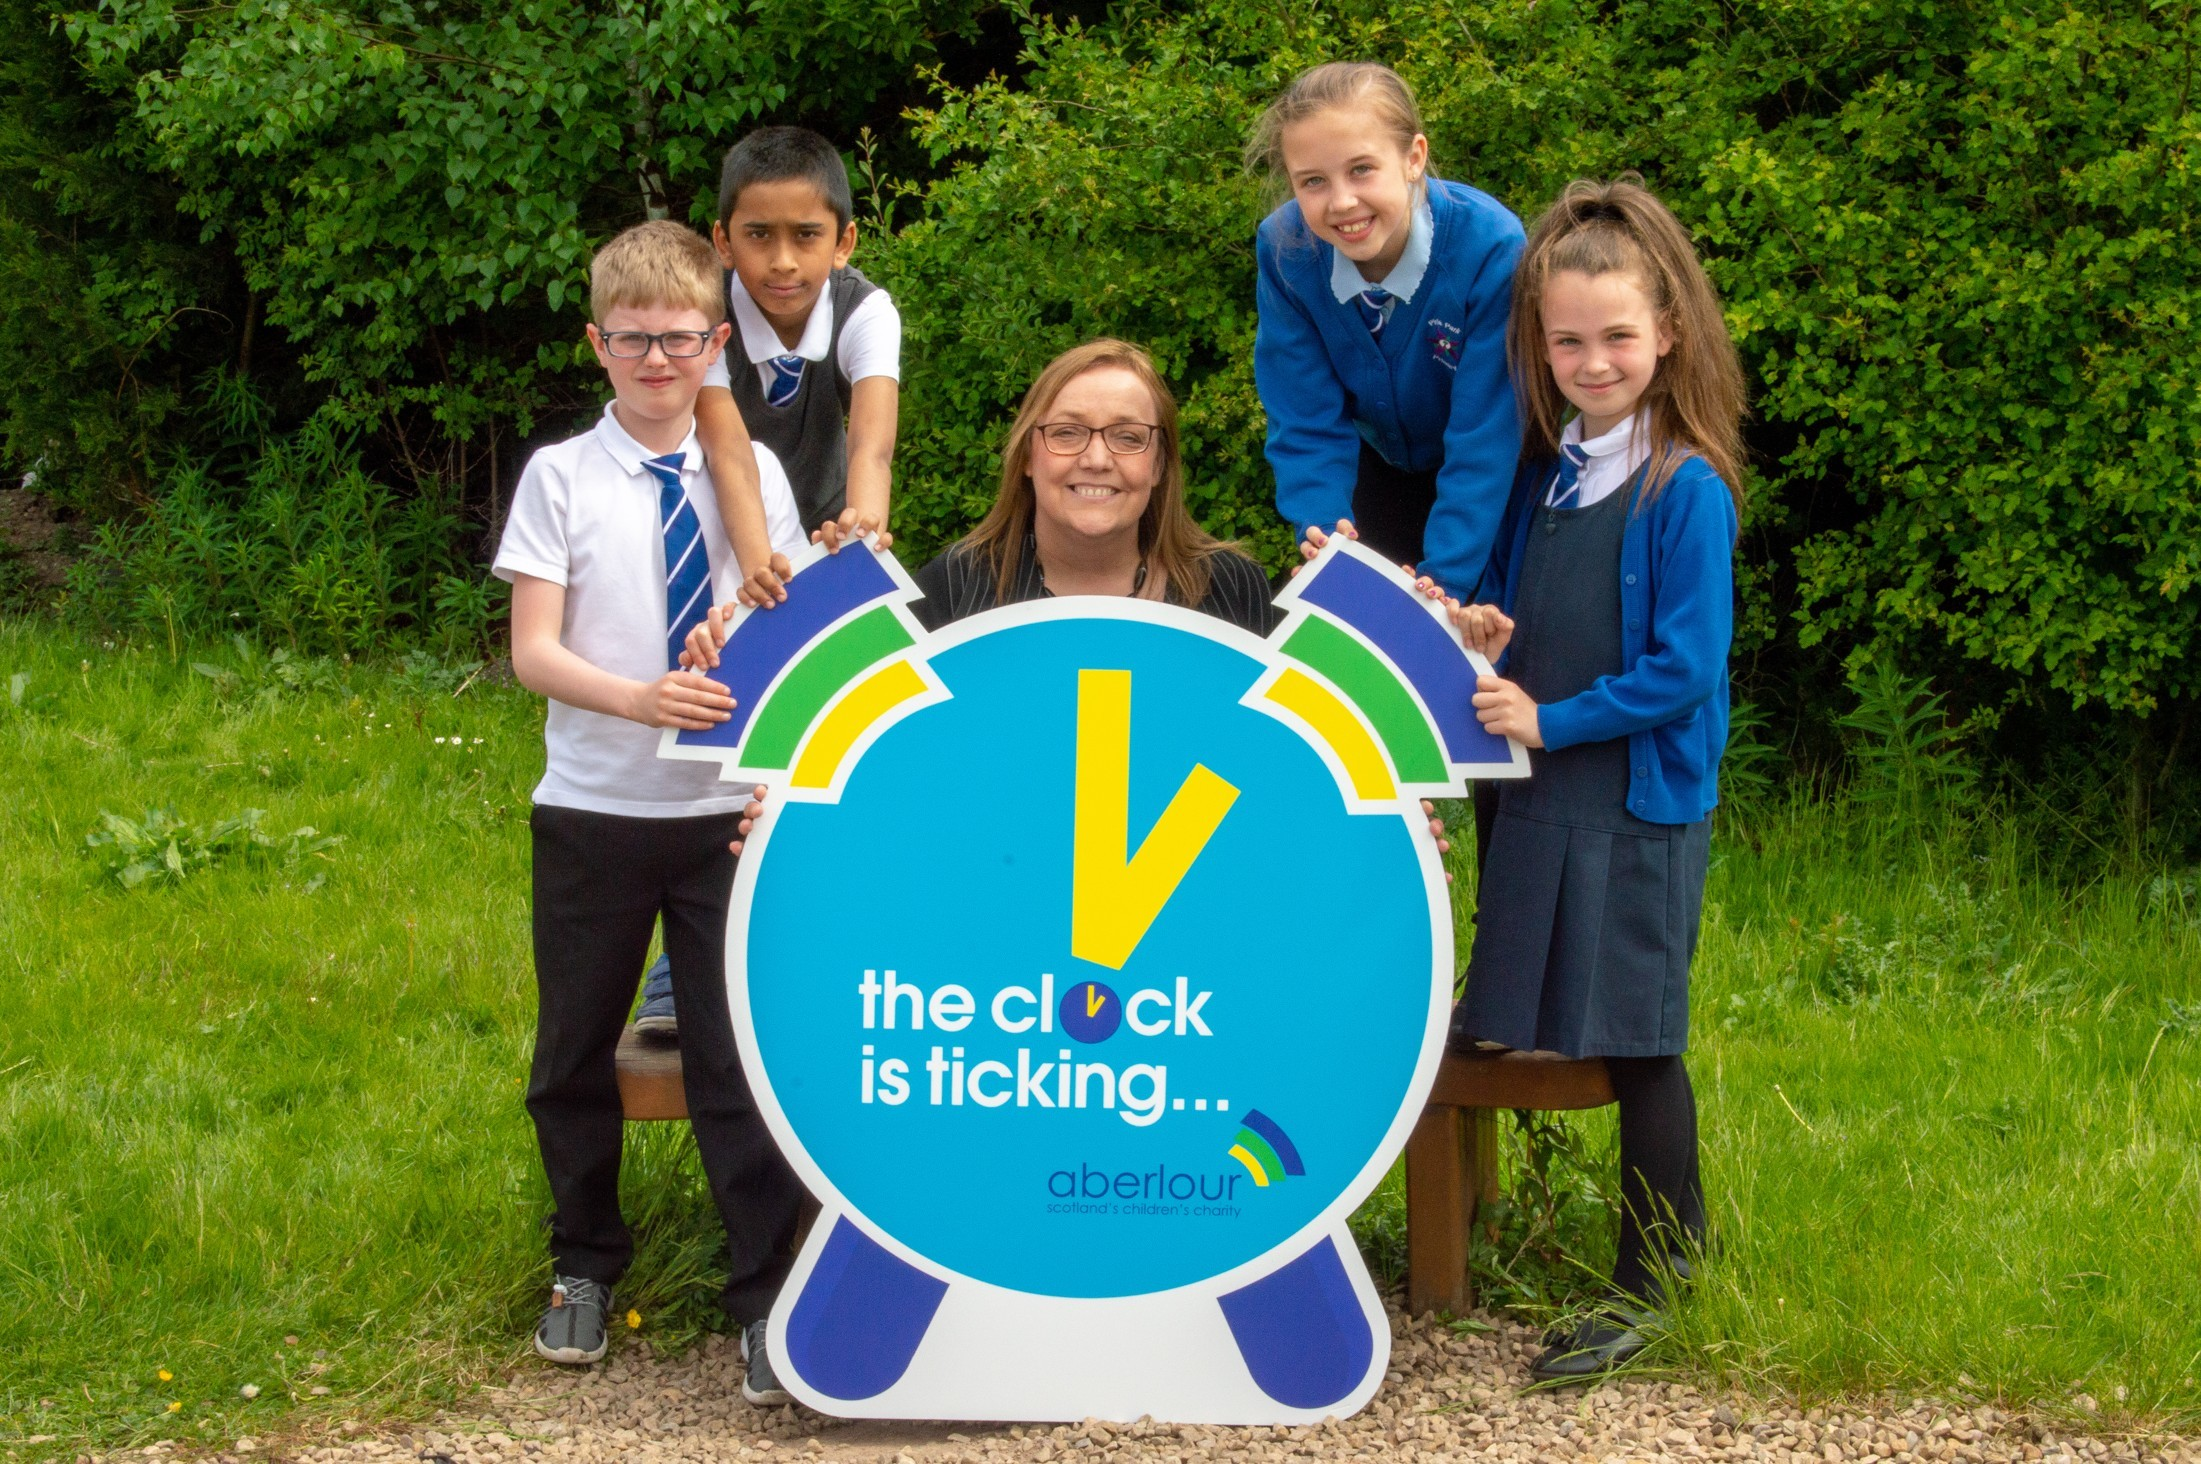 Aberlour's SallyAnn Kelly launching the campaign with primary school children